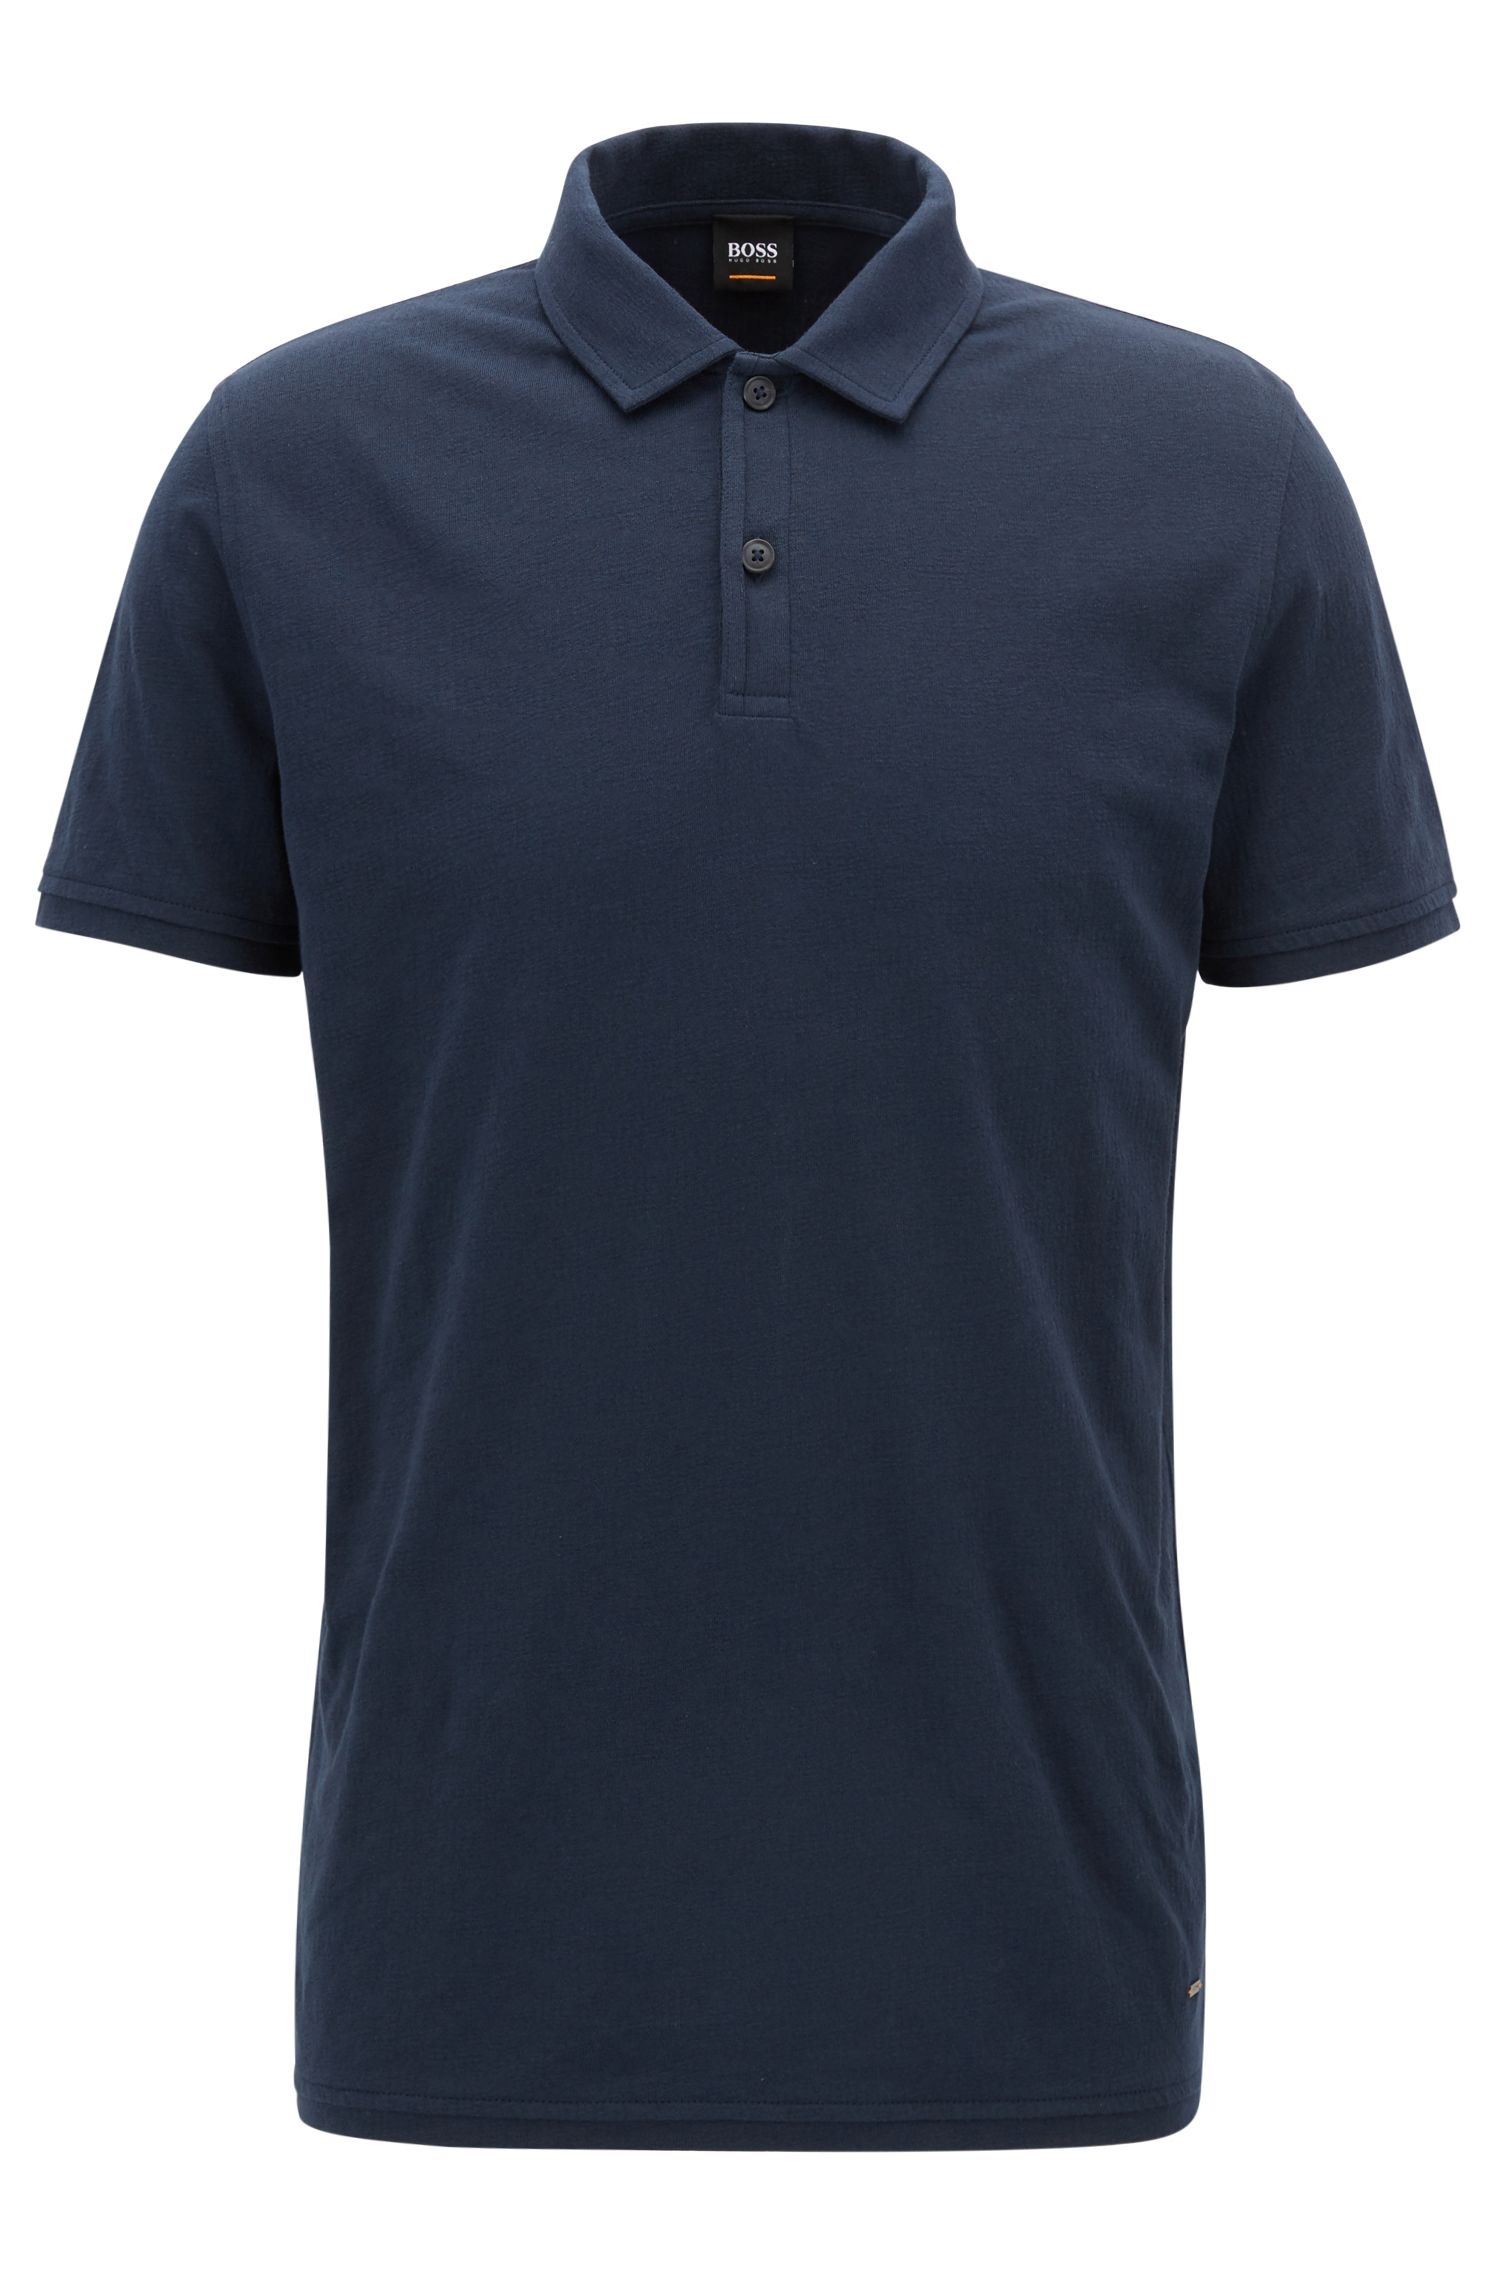 Polo Regular Fit en jacquard, en jersey de coton